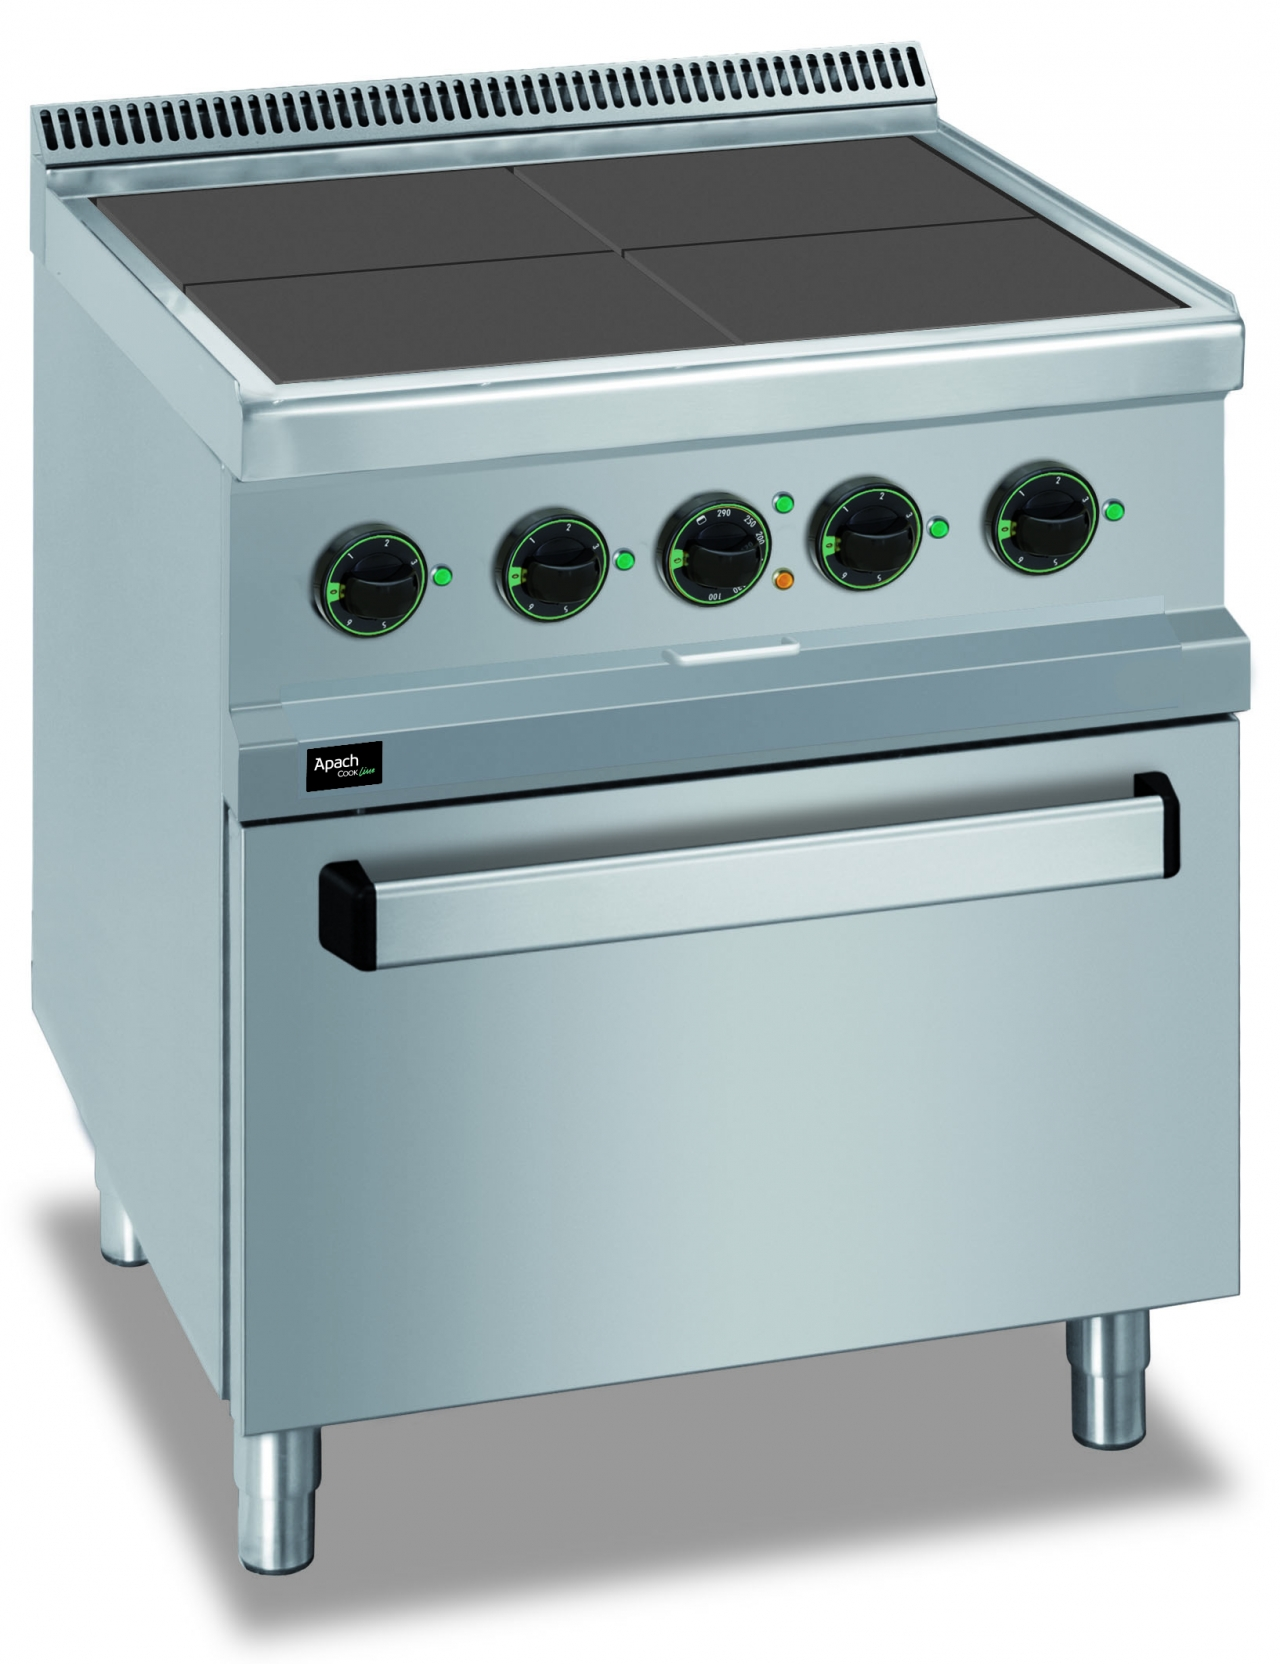 Electric stove 4 plates 15.3kW 77QFE